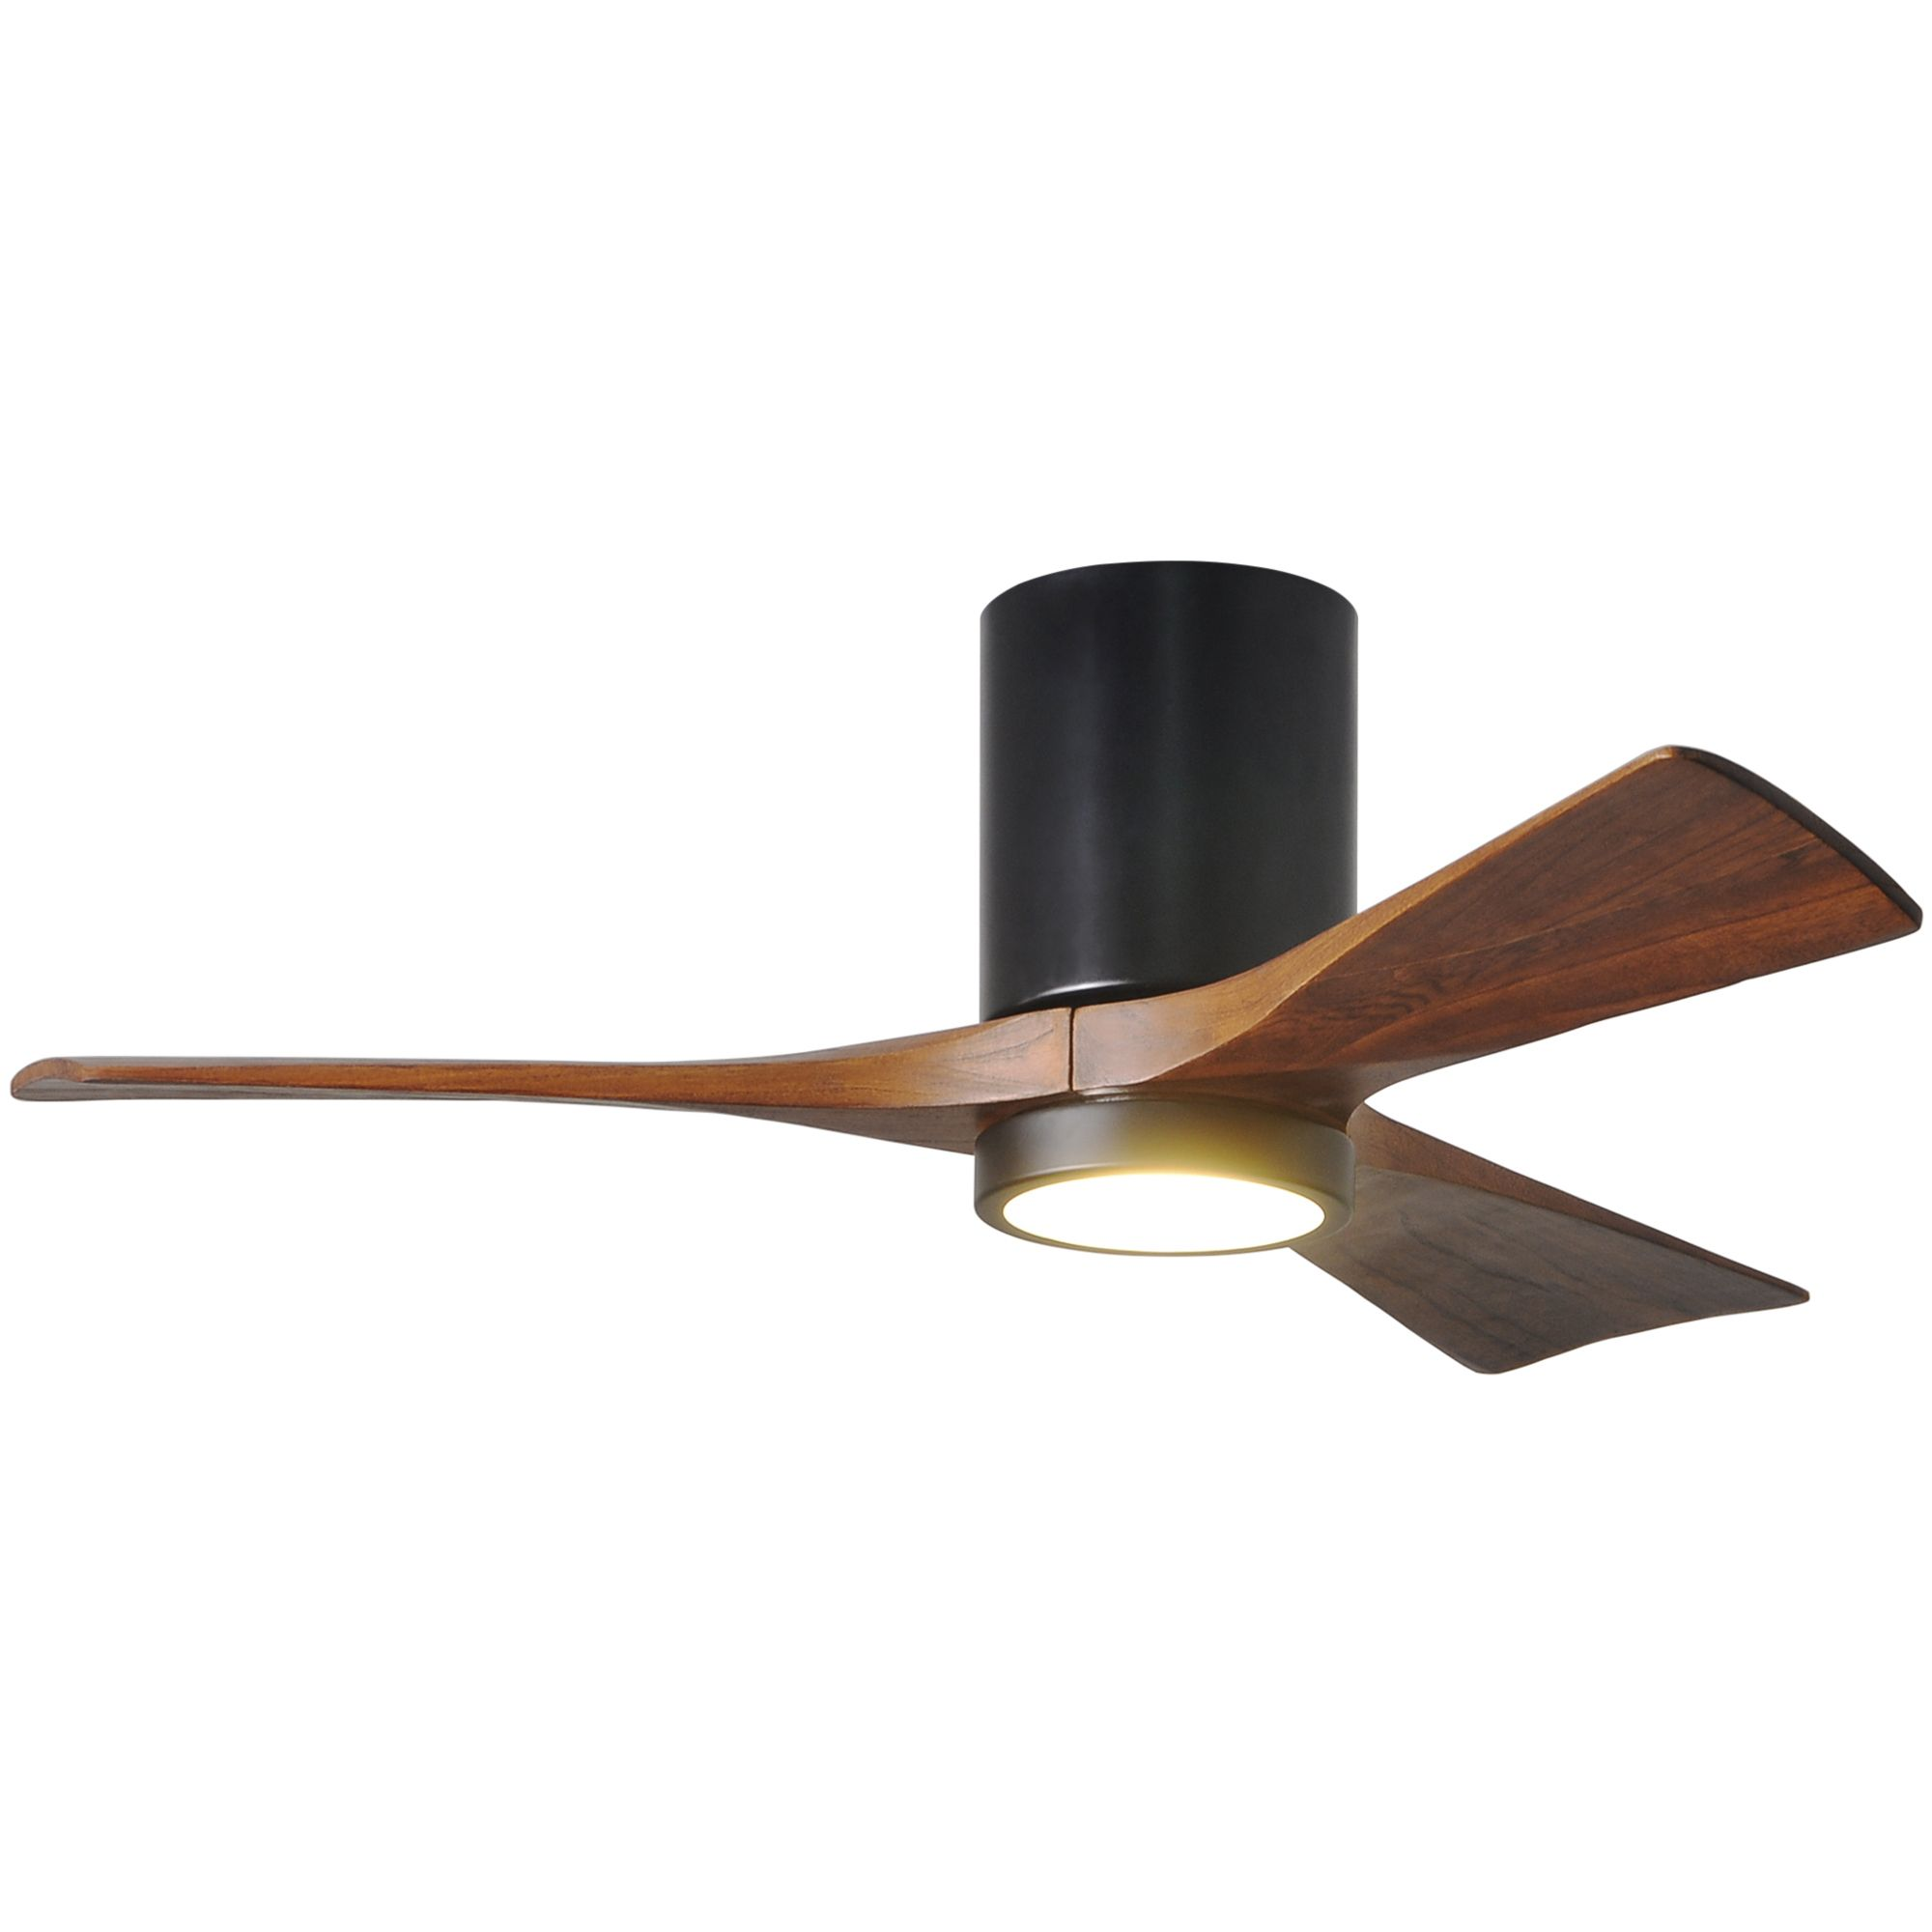 Irene Hugger Ceiling Fan With Light By Matthews Fan Company Ir3hlk Bk Wa 42 With Images Ceiling Fan With Light Ceiling Fan Fan Light